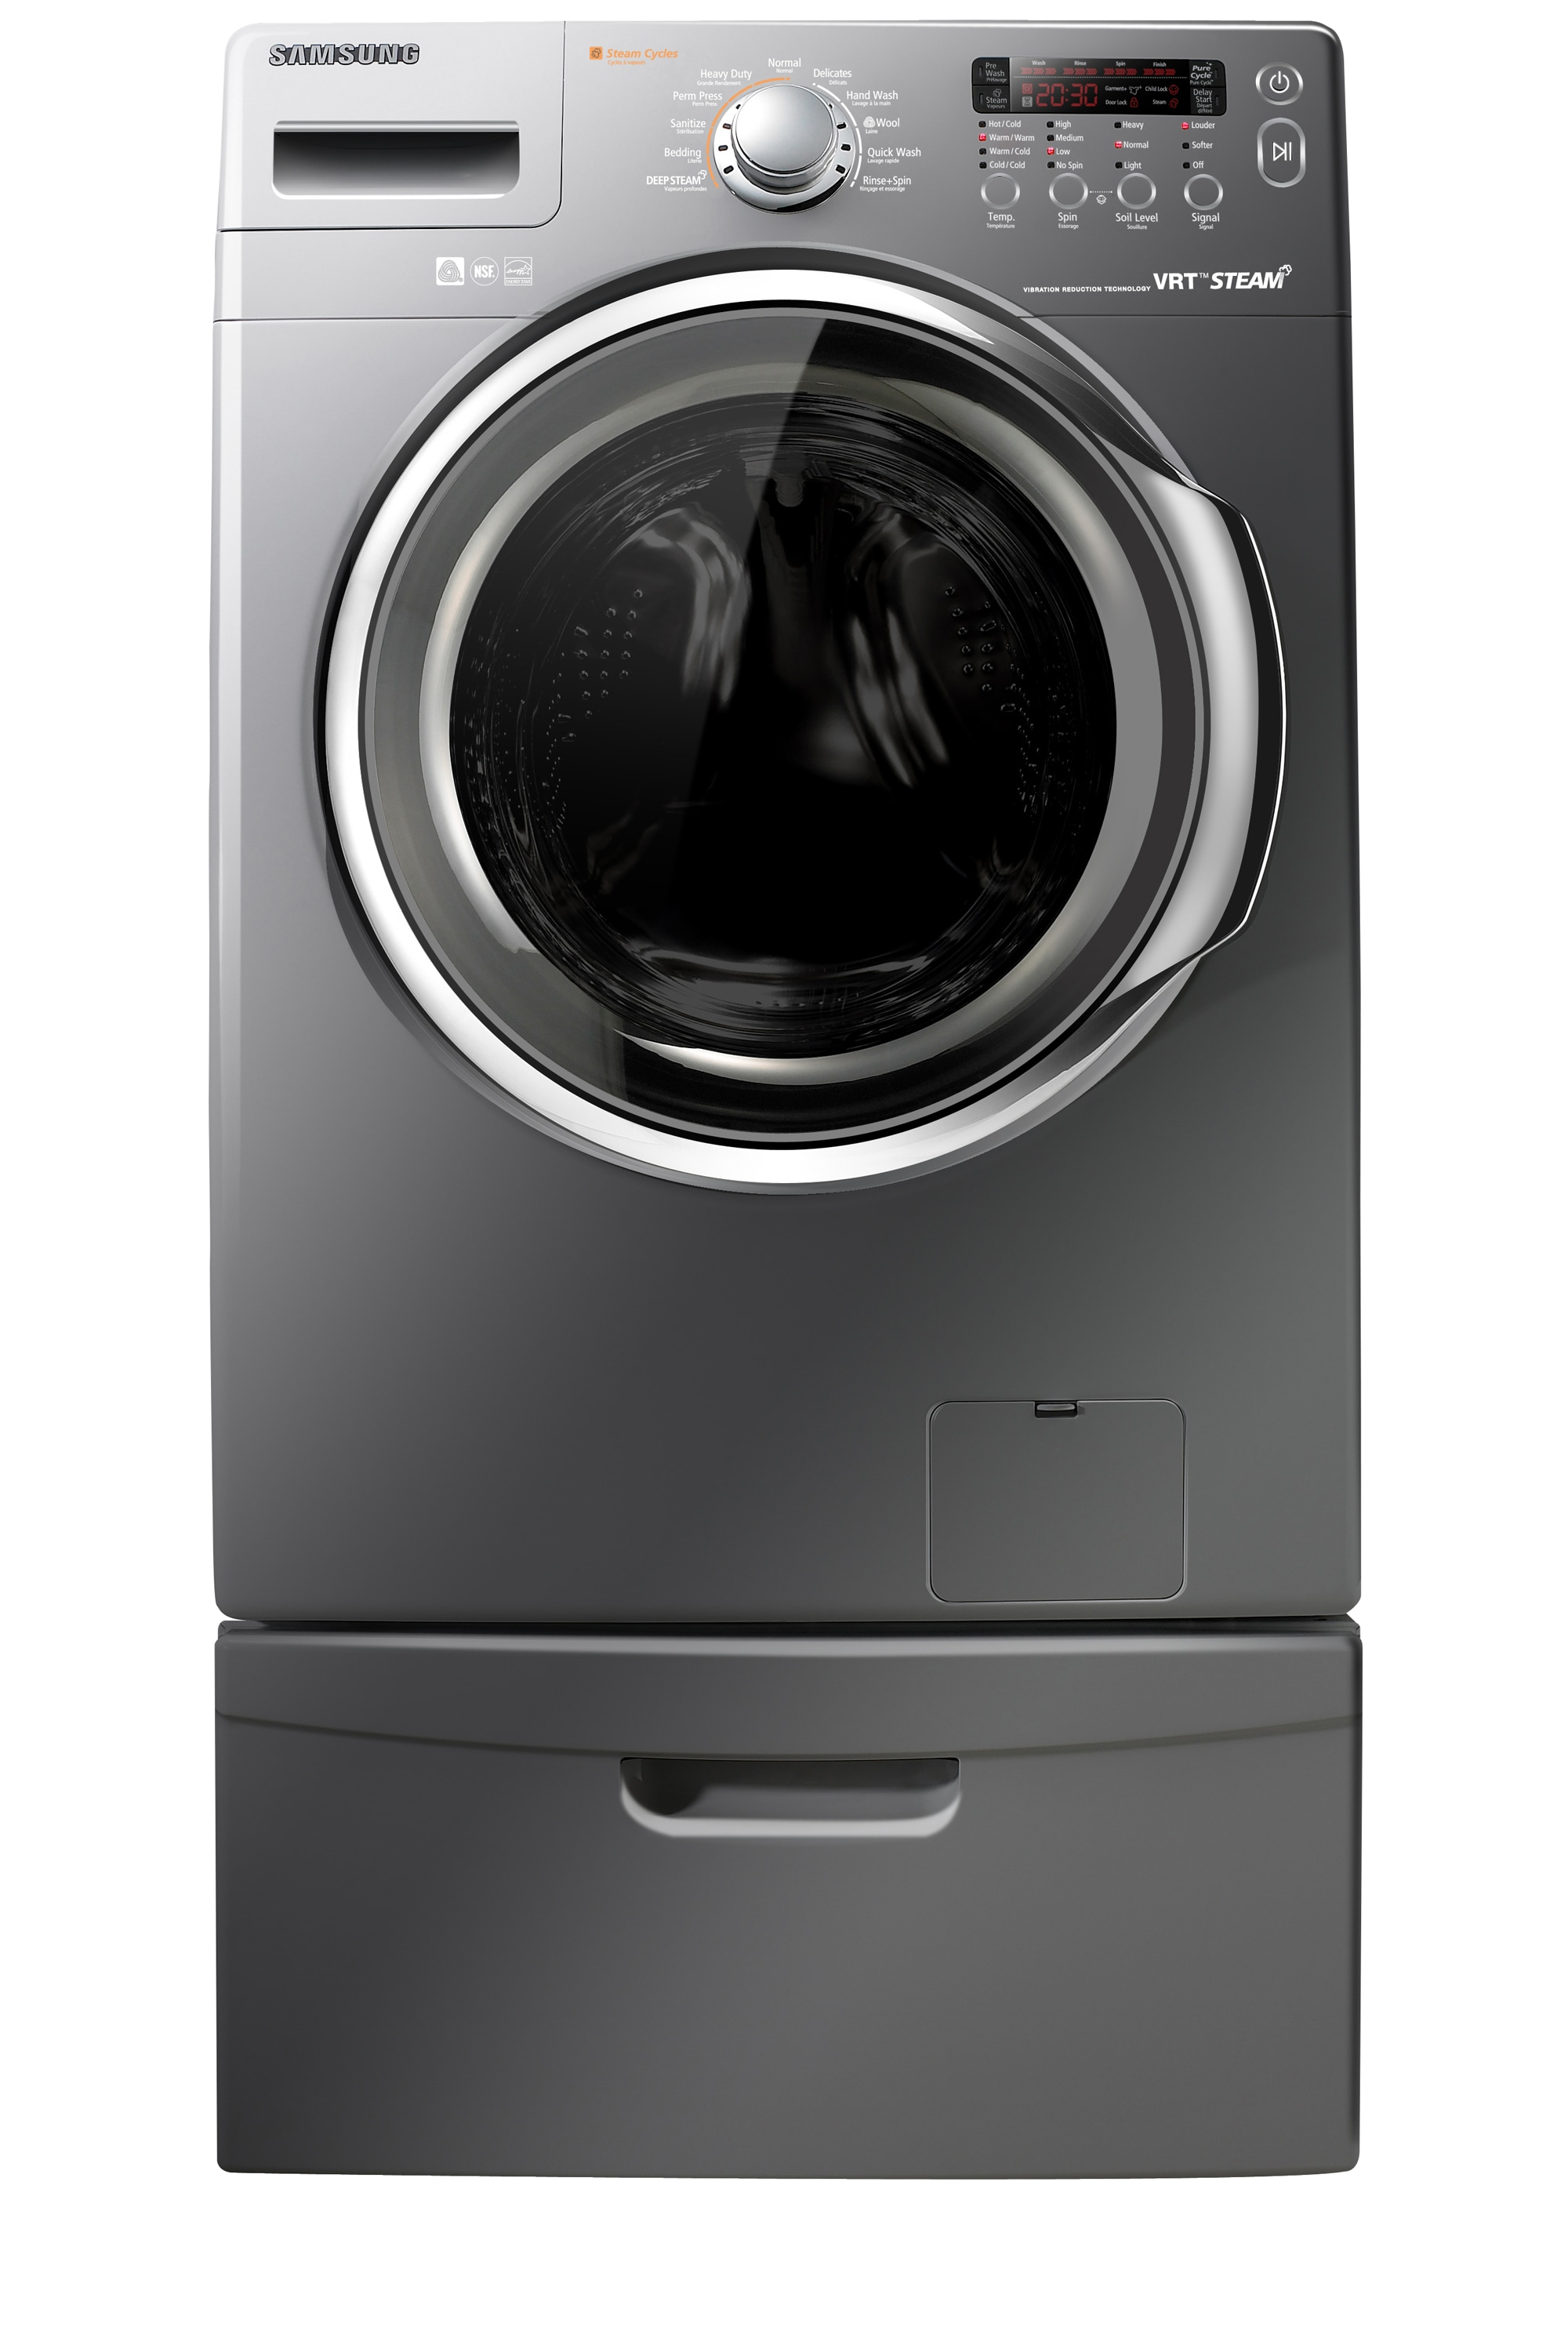 WF350ANG 4.3 cu. ft. Front Load Washer Stratus Grey